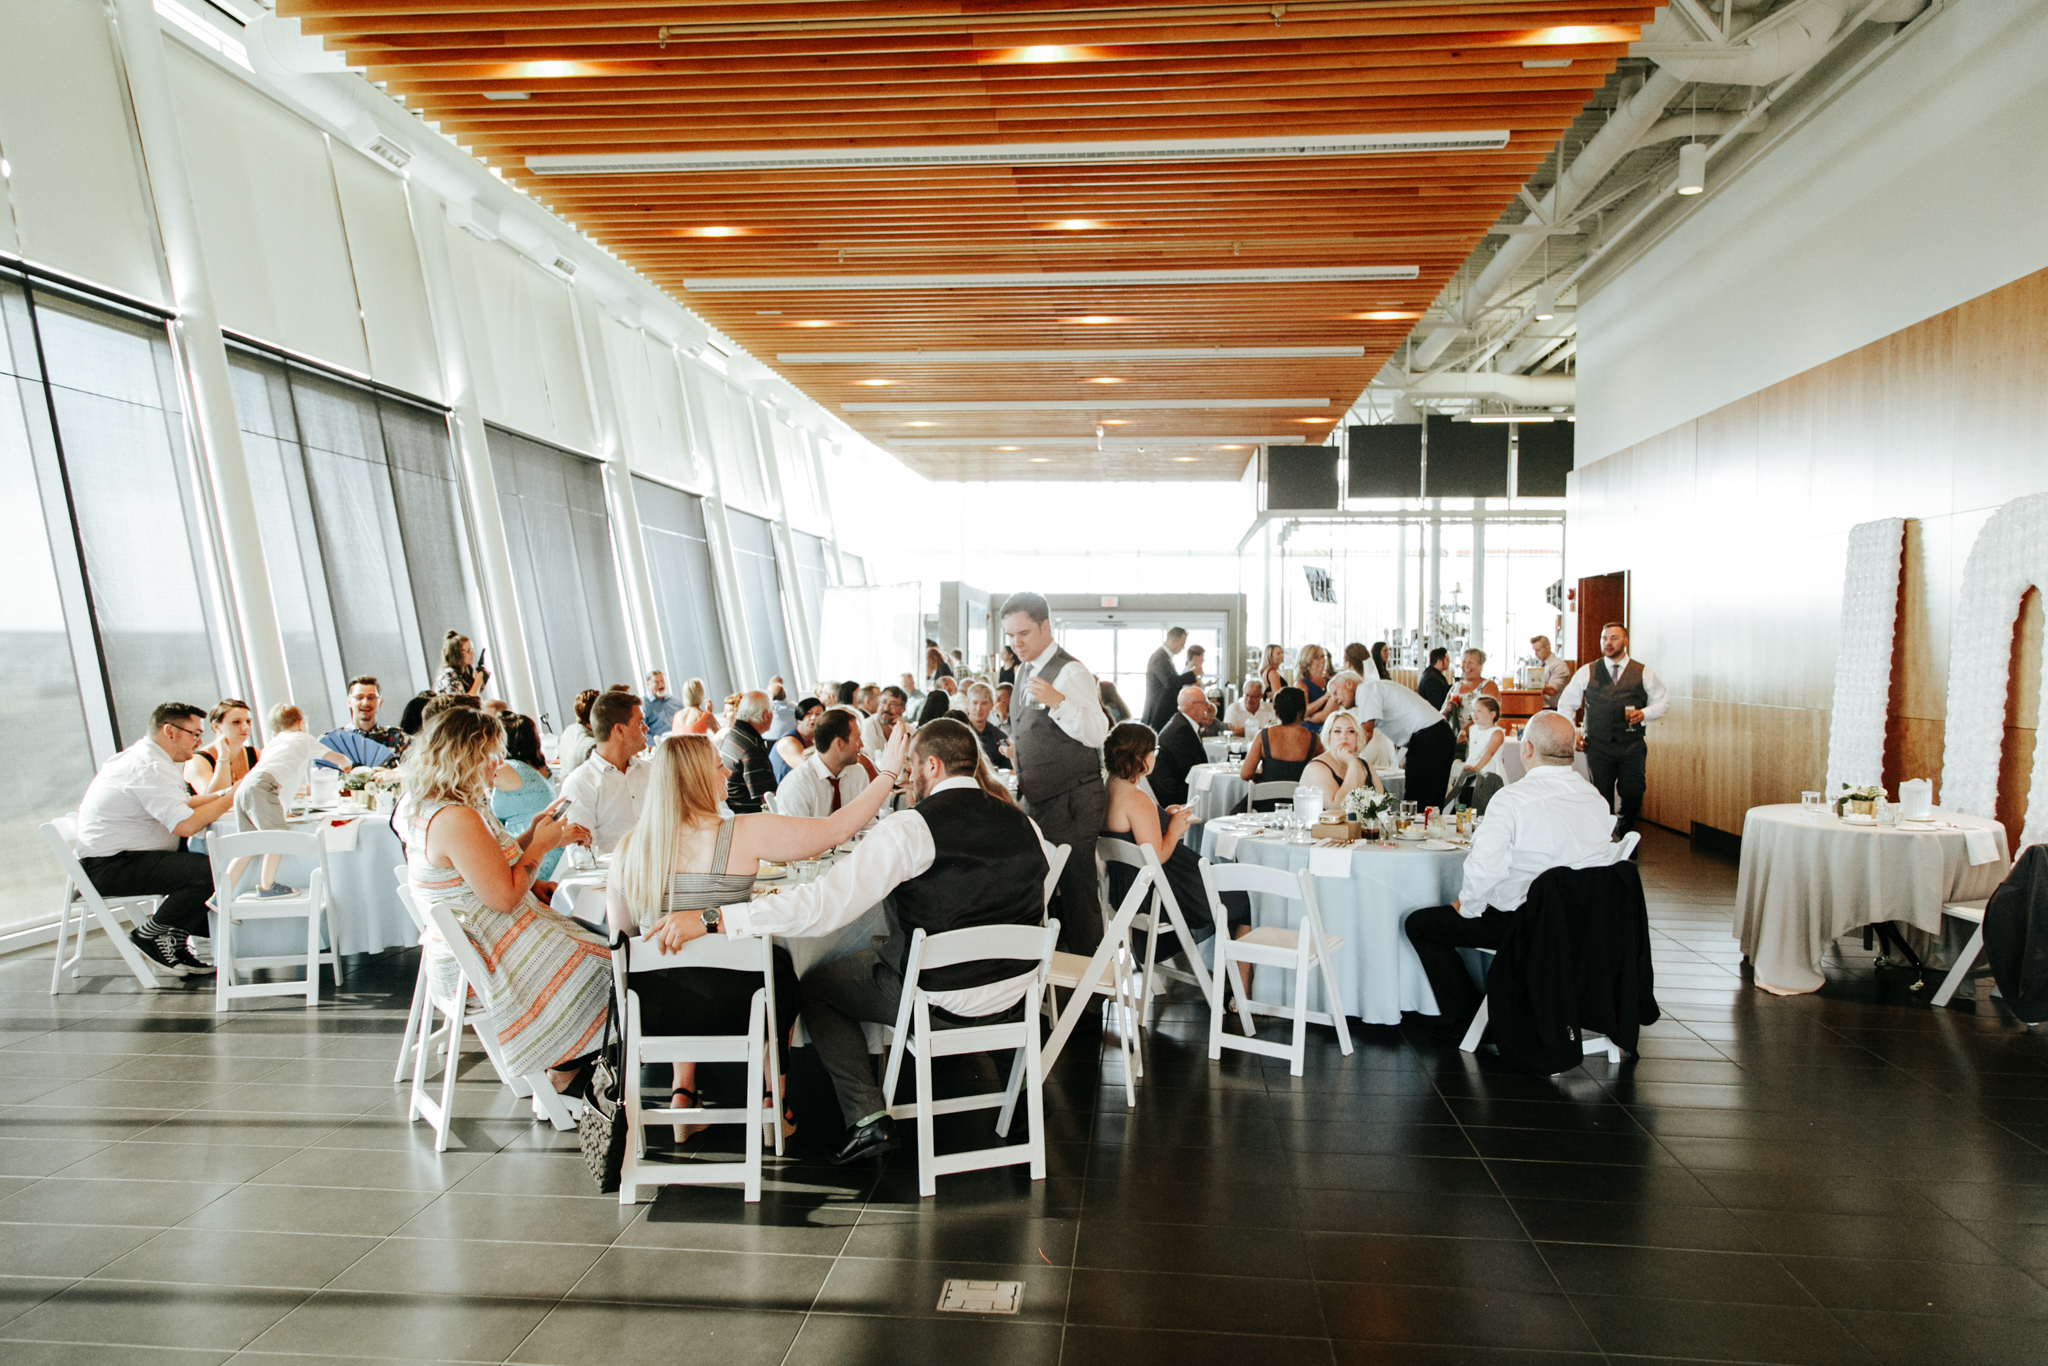 lethbridge-wedding-photographer-love-and-be-loved-photography-trent-danielle-galt-reception-picture-image-photo-179.jpg